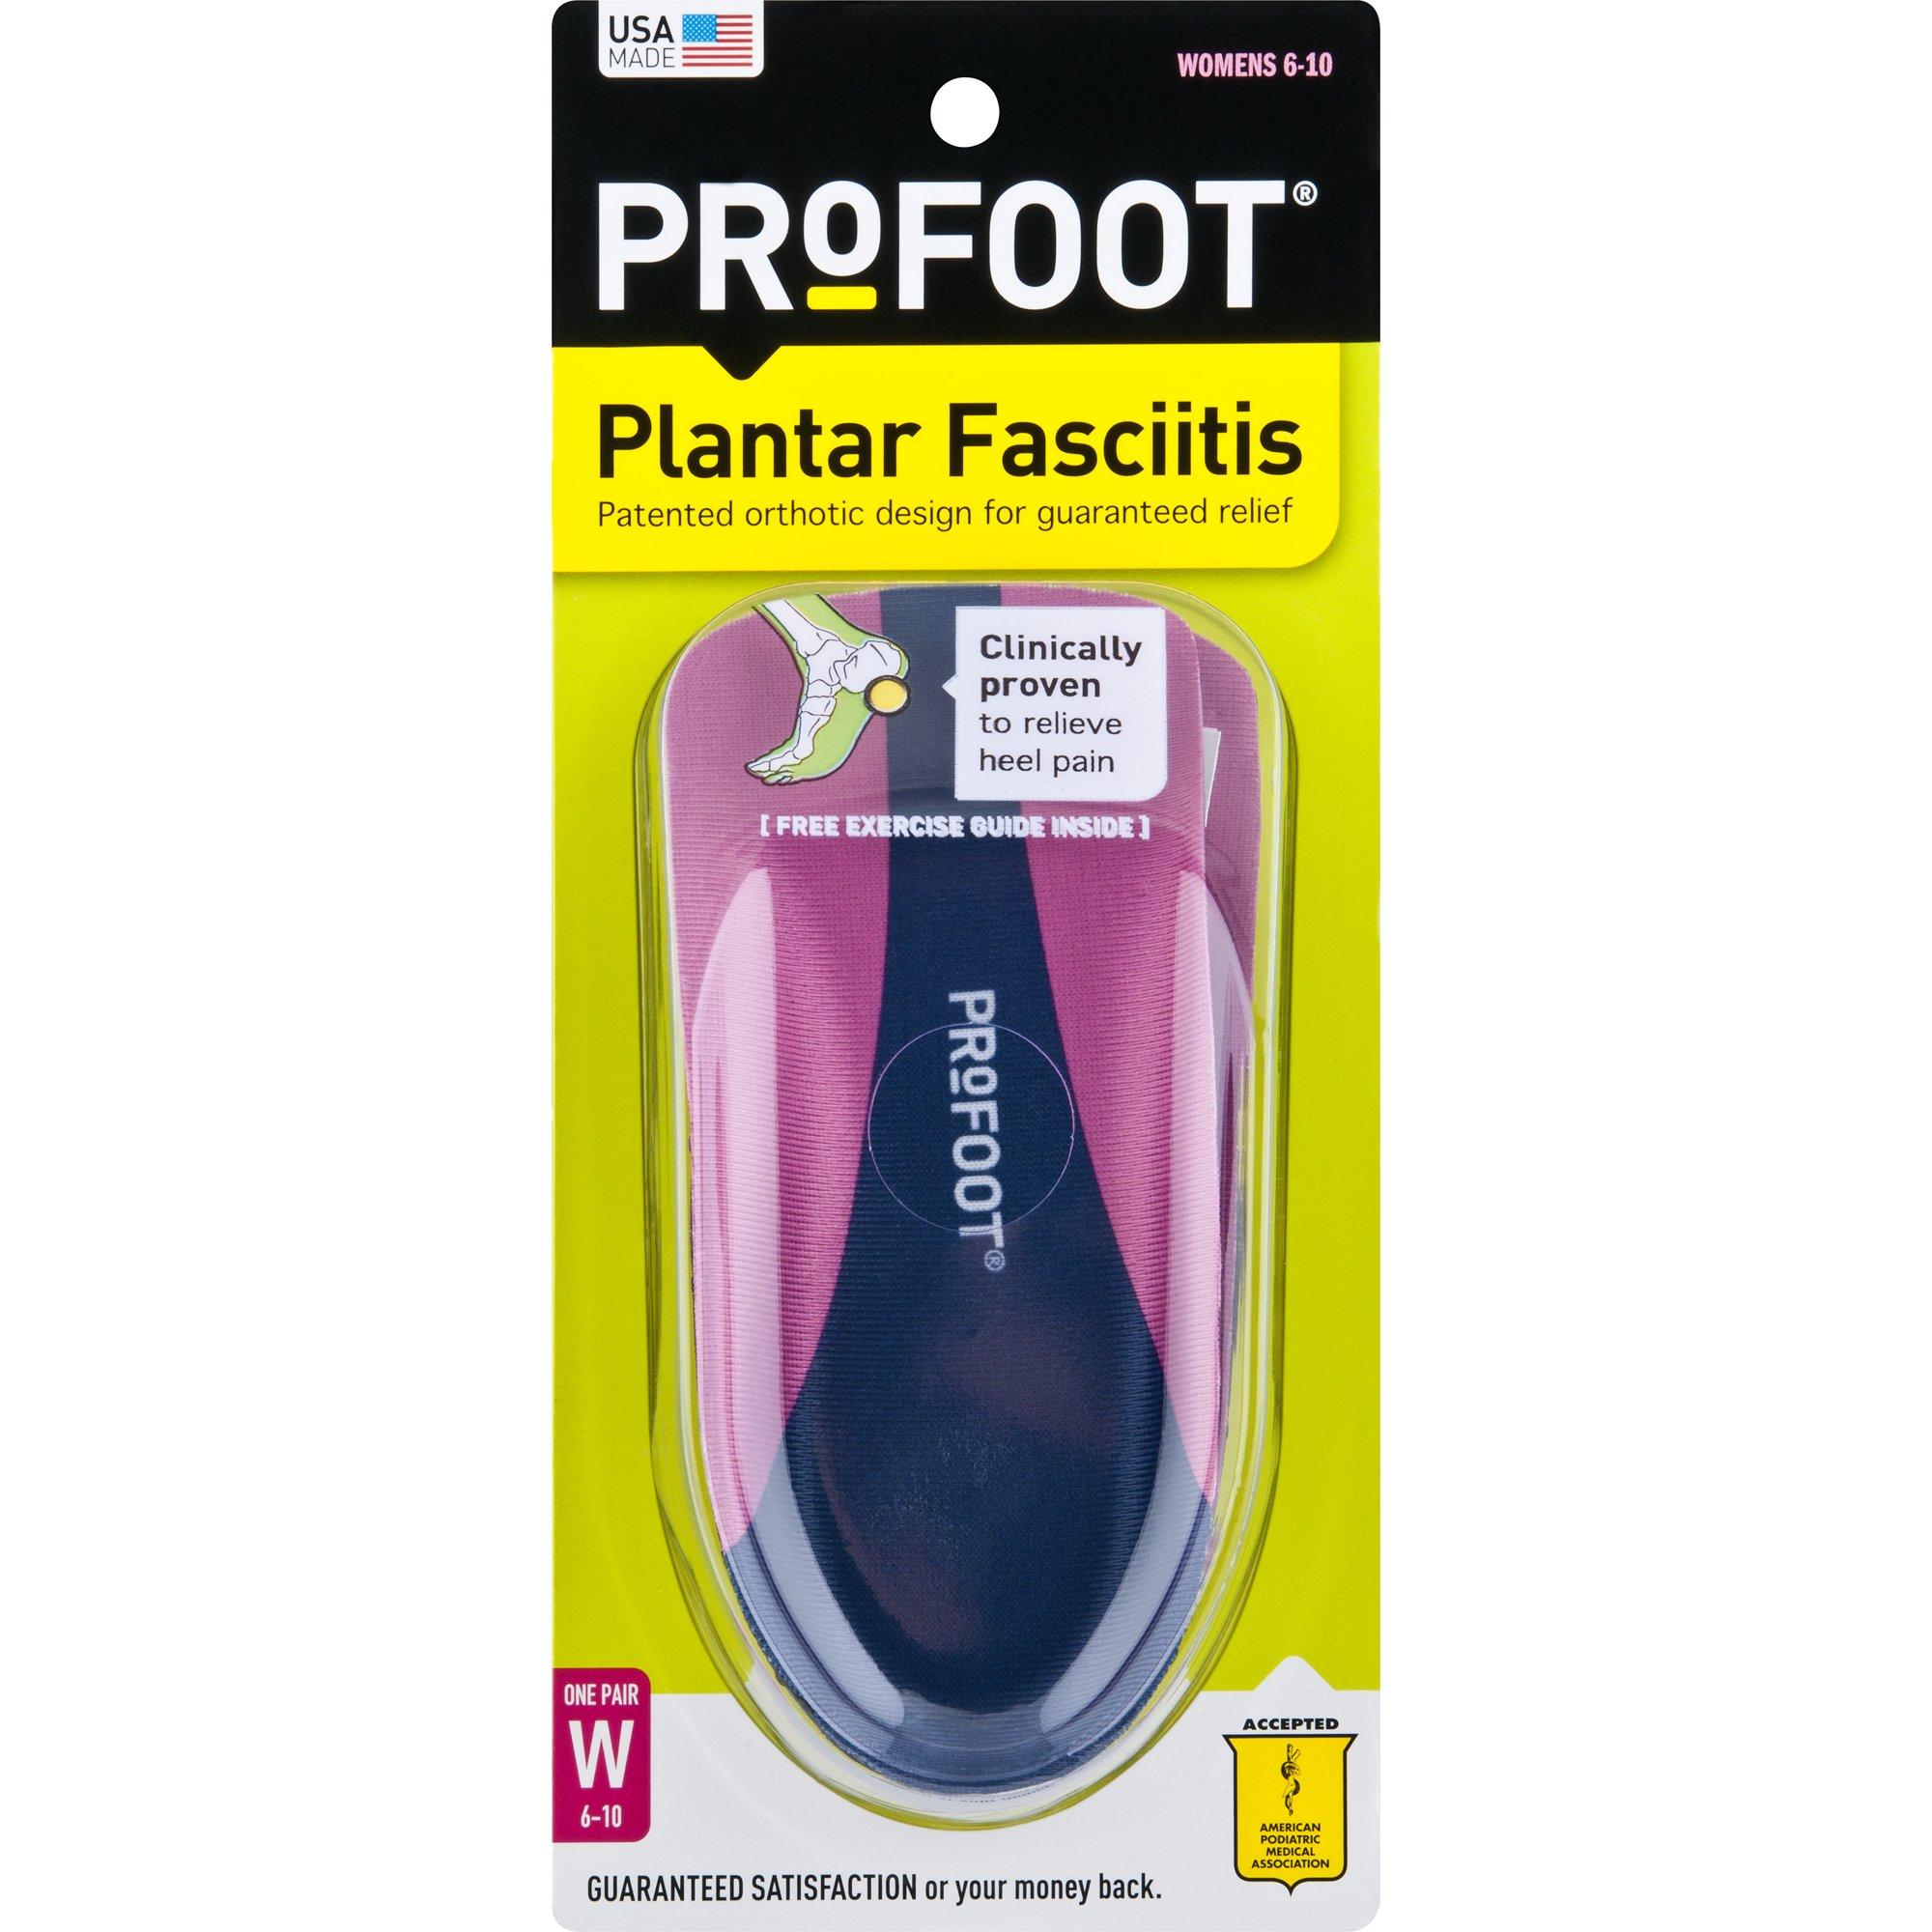 PROFOOT Heel Pain & Plantar Fasciitis Women's 6-10 1 Pair Insoles for Arch Support, Helps Releive Plantar Fasciitis Pain